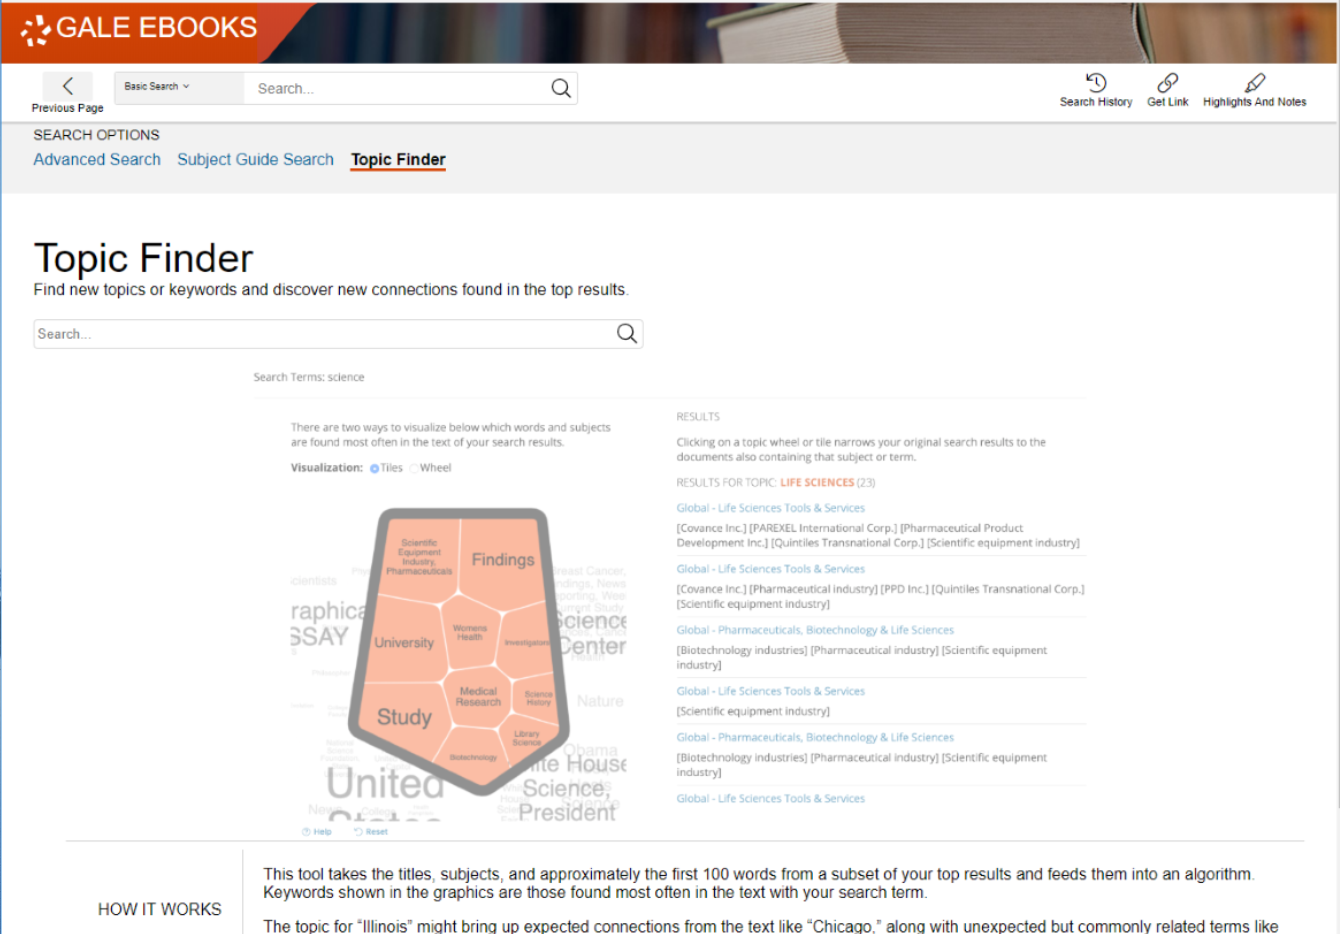 Topic Finder in Gale eBooks - Gale Virtual Reference Library (GVRL)